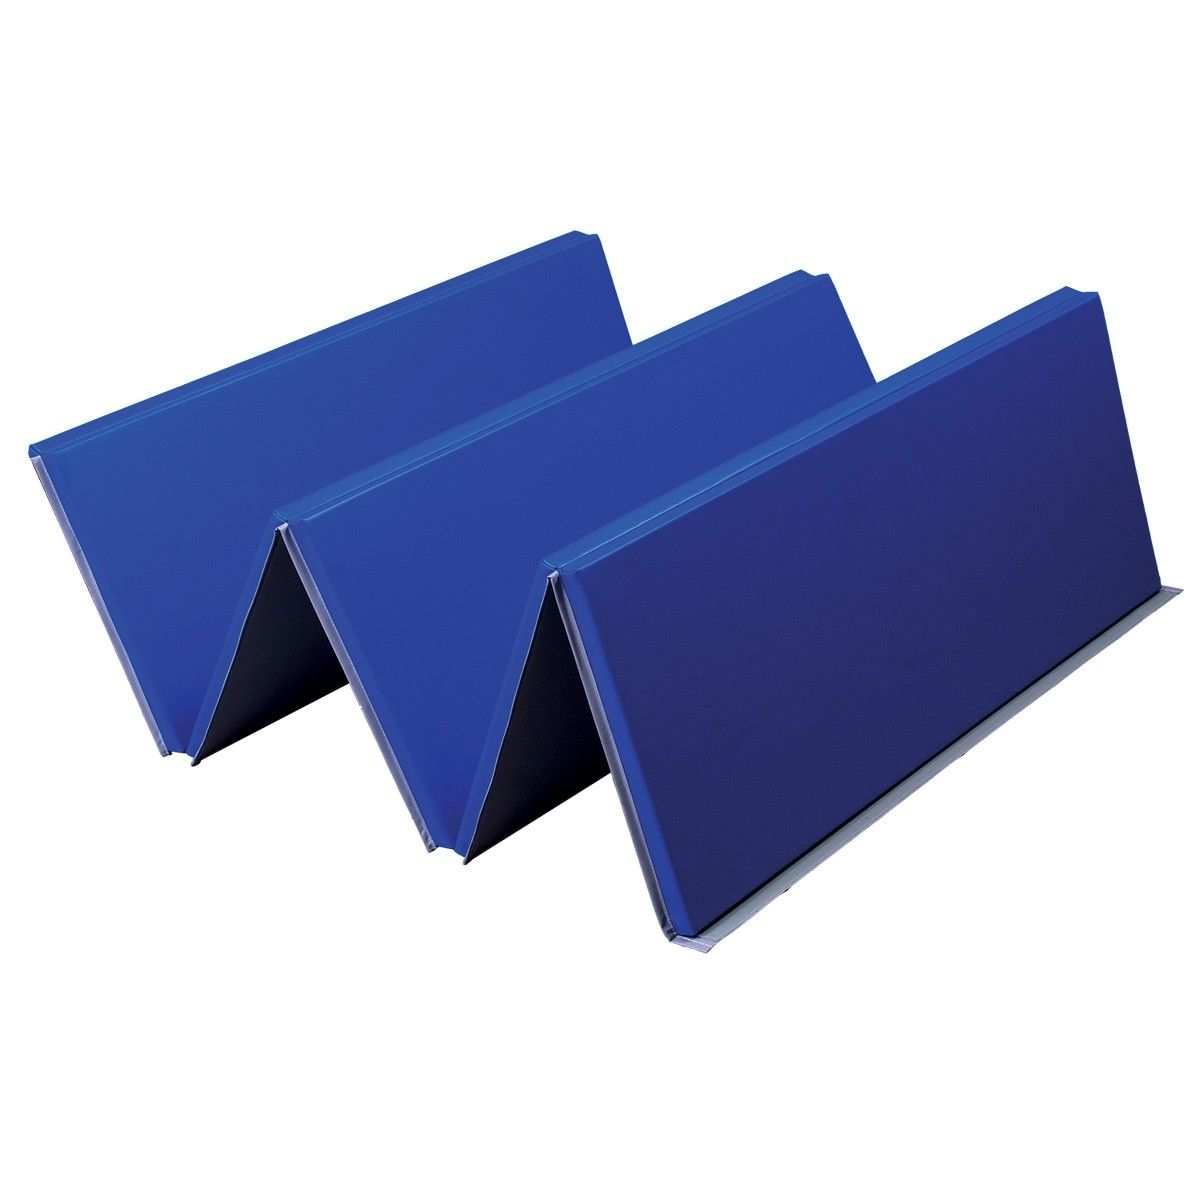 Gymnastic Tumbling Mats 5 Part 5ft x 10ft x 1.5in (3.8cm)